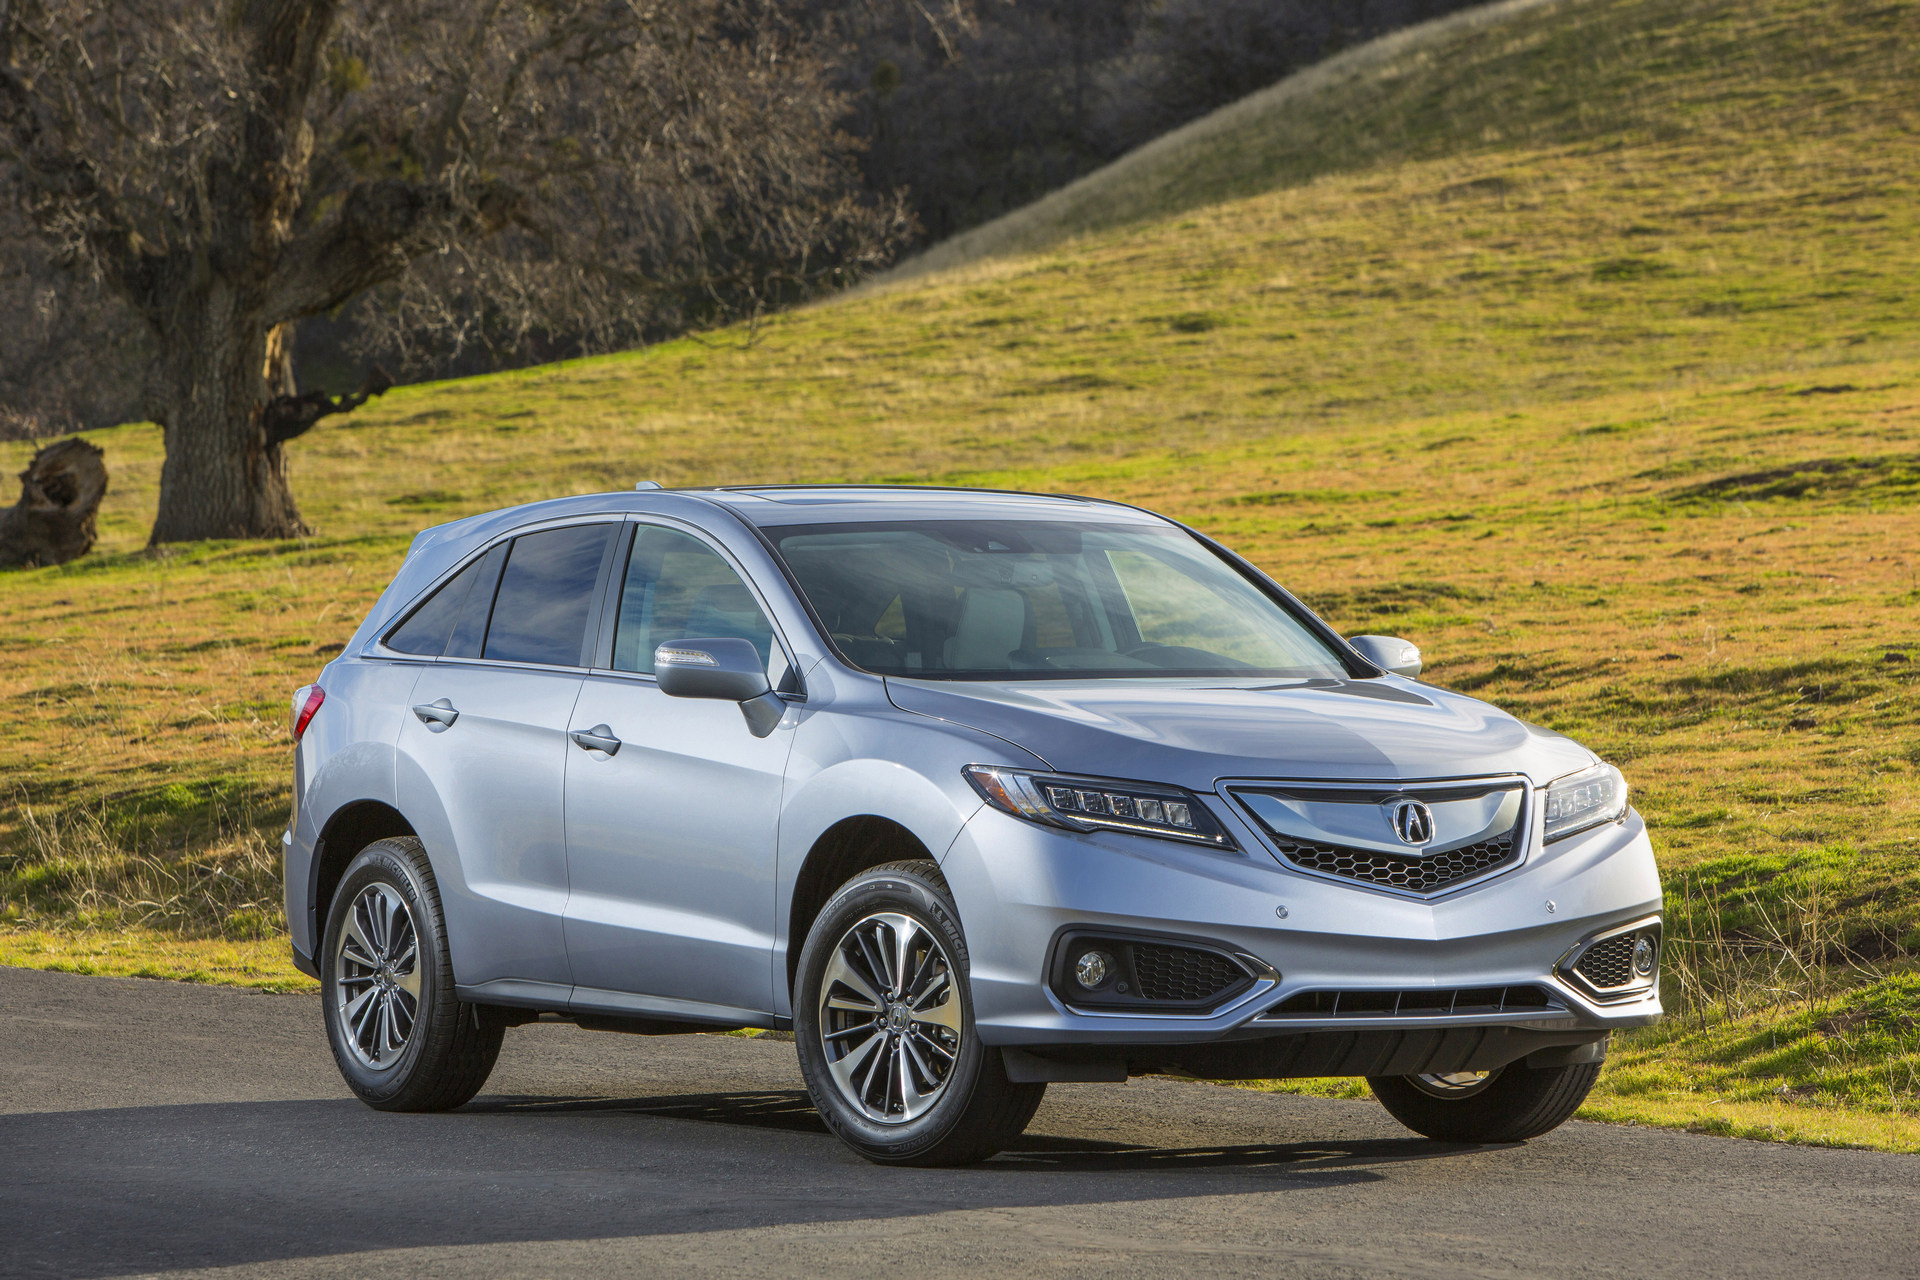 Top 15 Most American Suvs And Crossovers For 2016 Carrrs Auto Portal